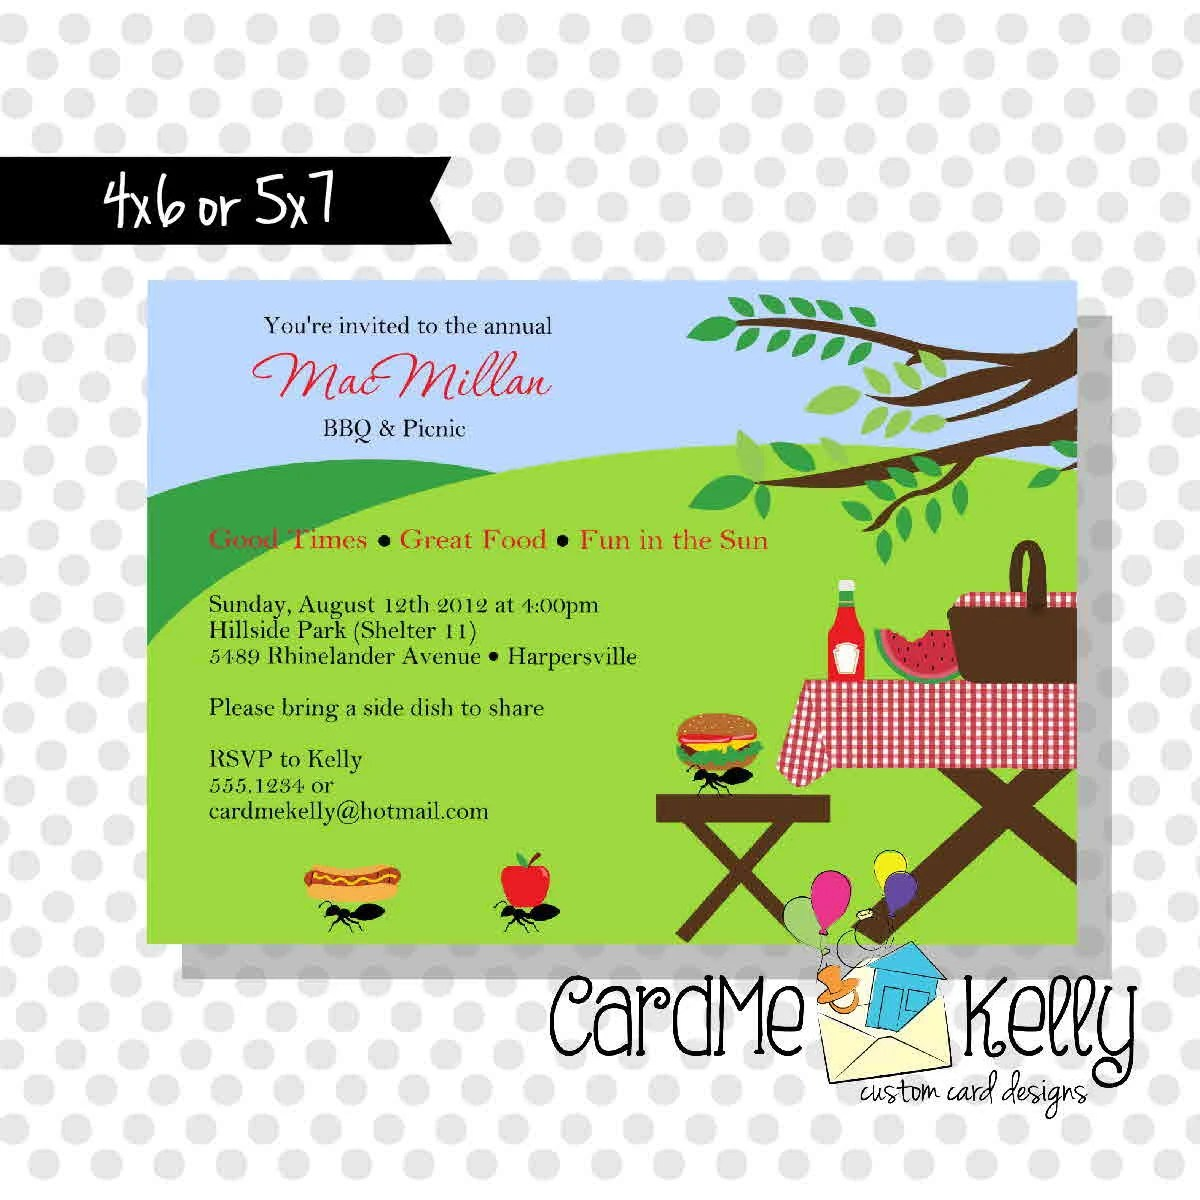 New Home Card Message Ideas